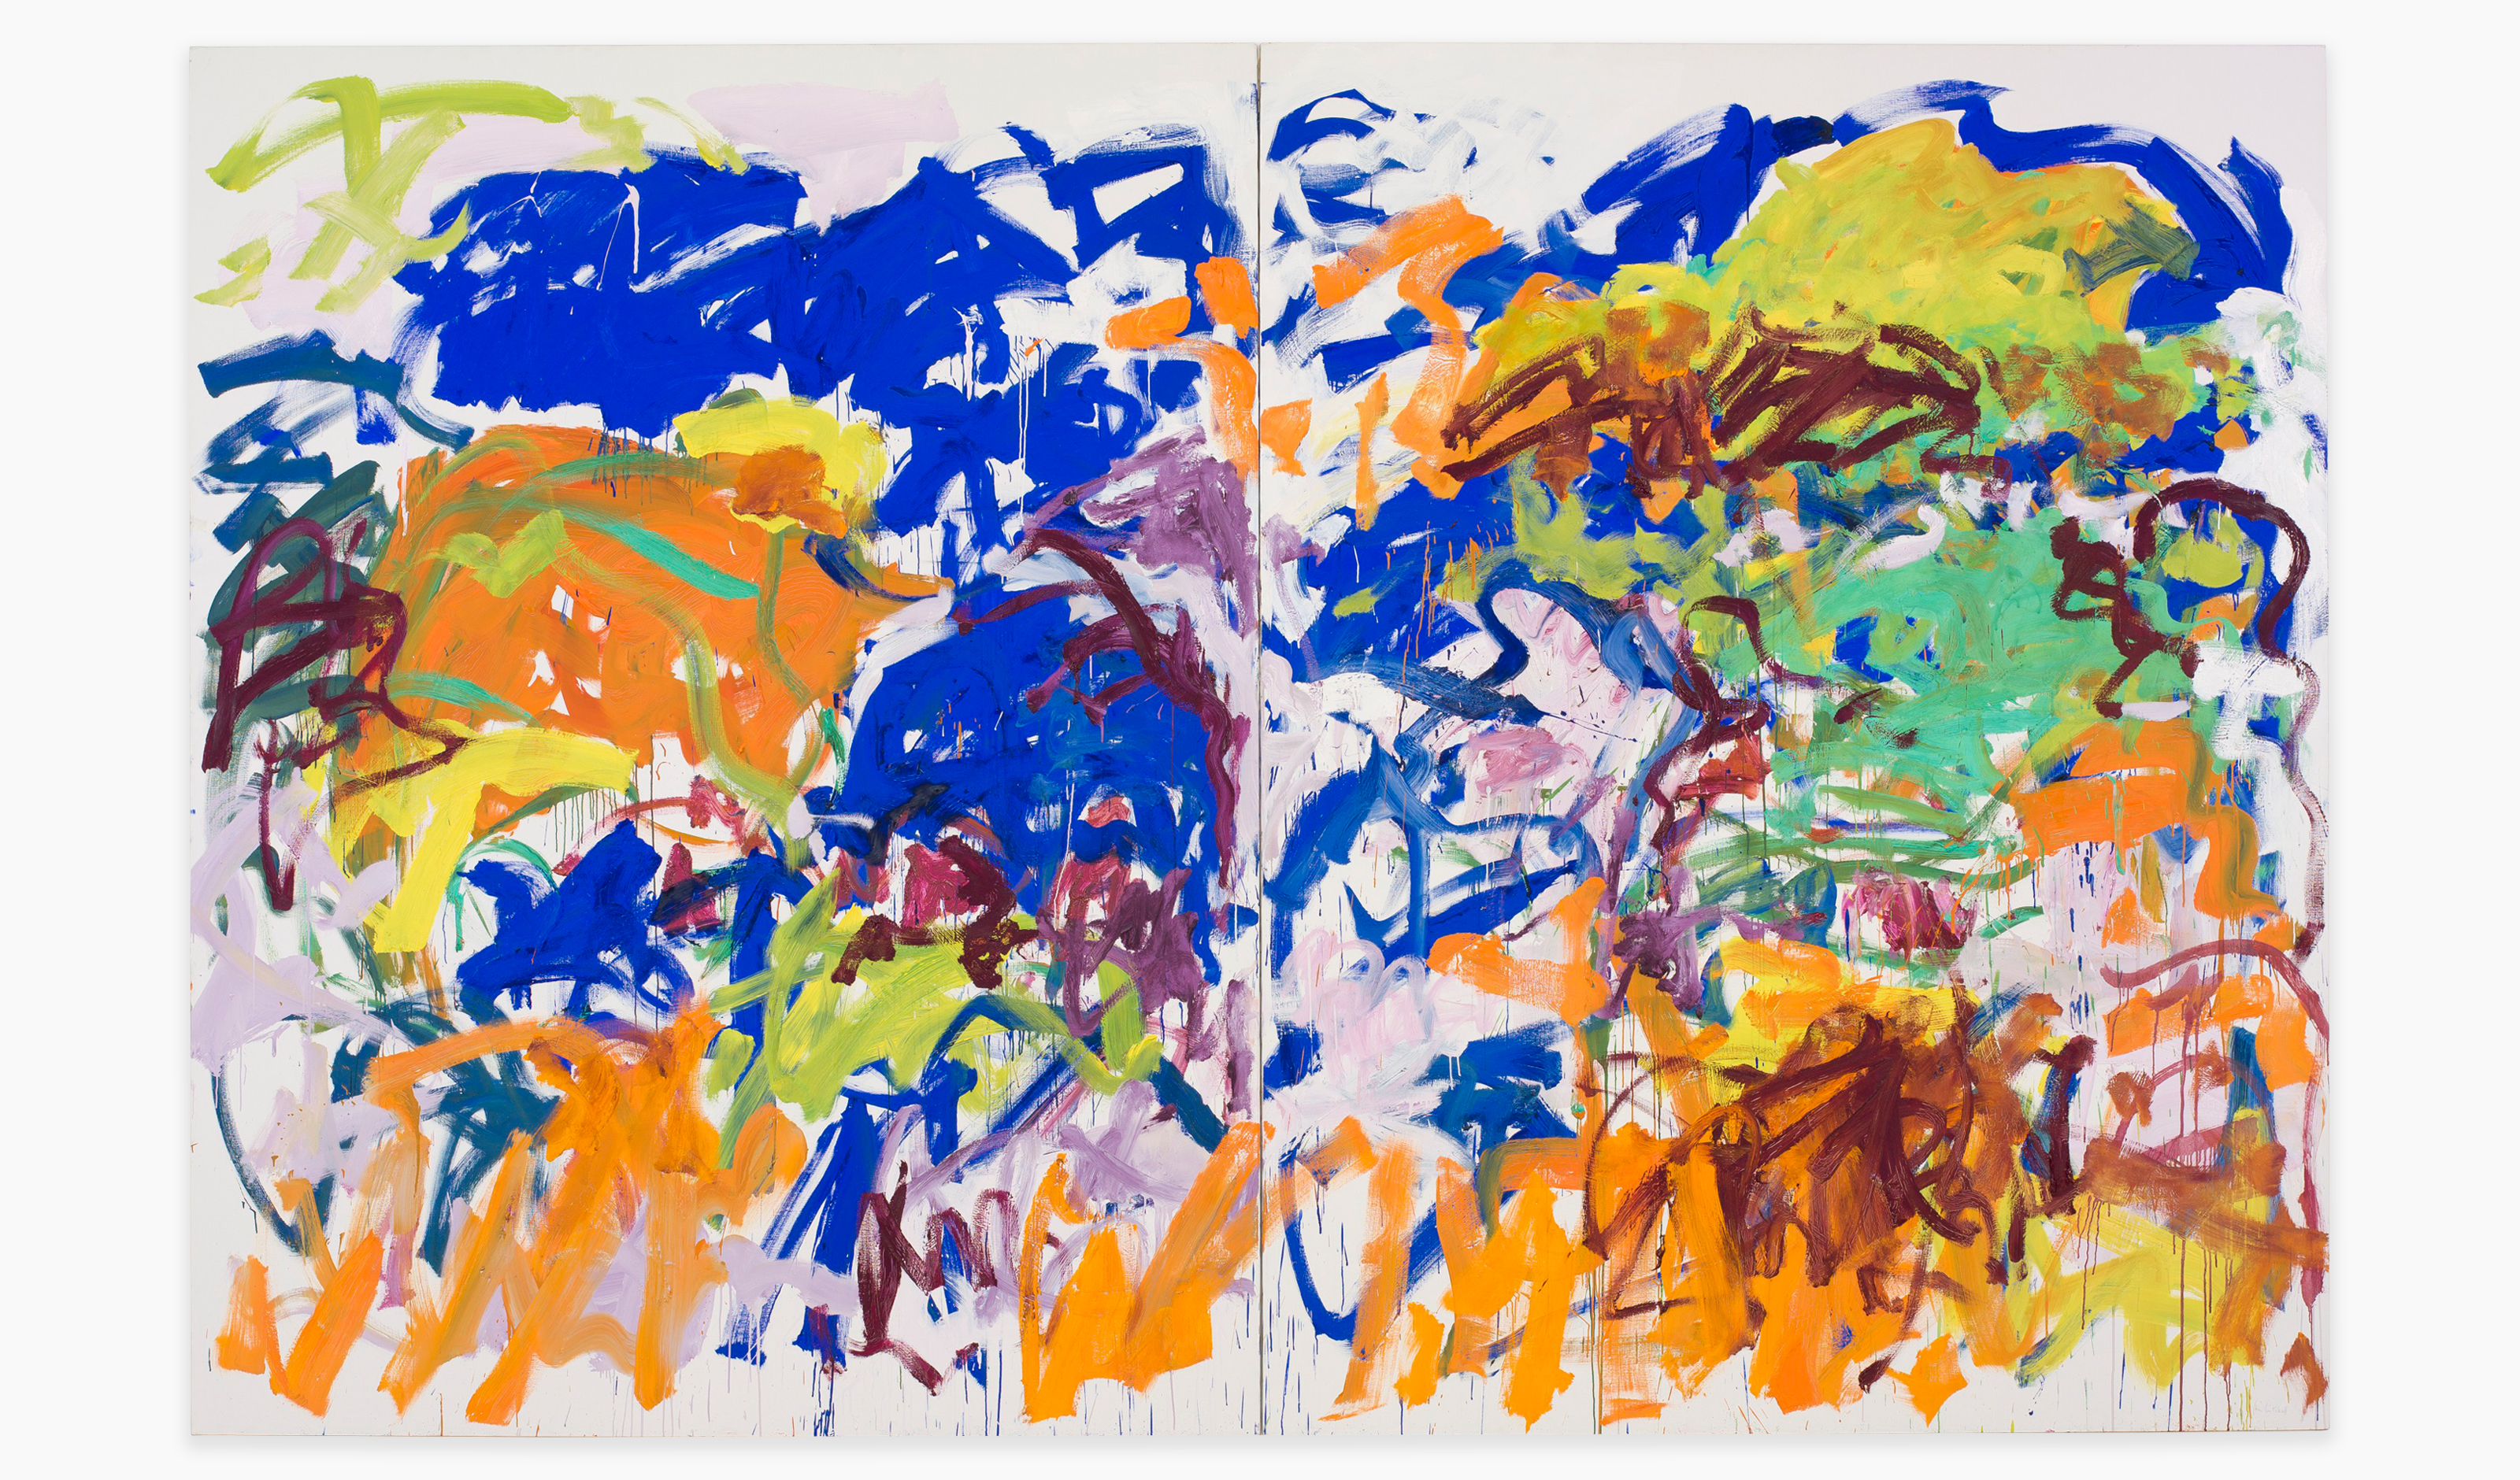 A painting by Joan Mitchell, titled, Ici, dated 1992.